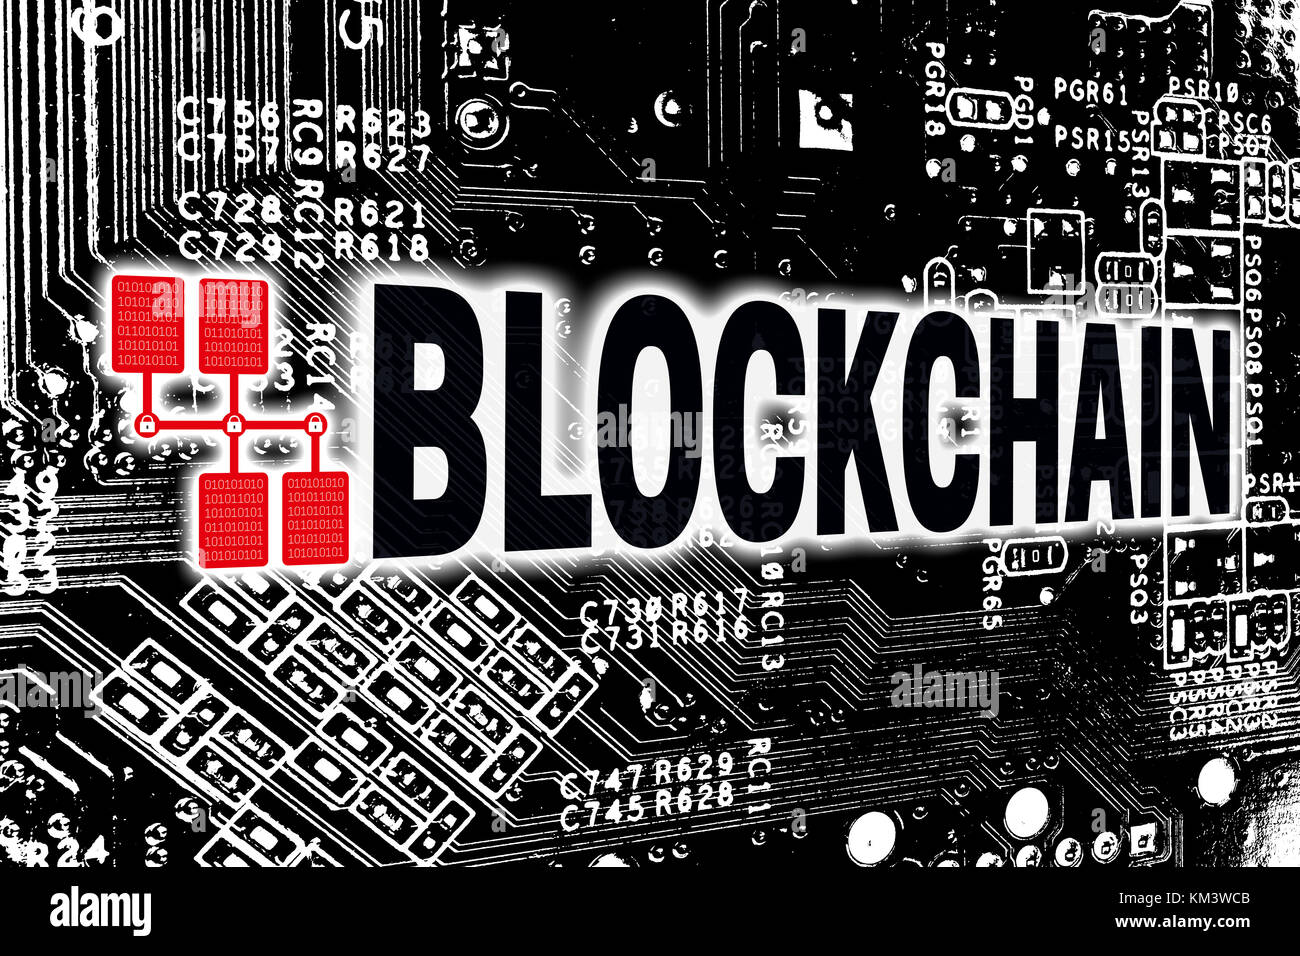 Blockchain With Circuit Board Concept.   Stock Image